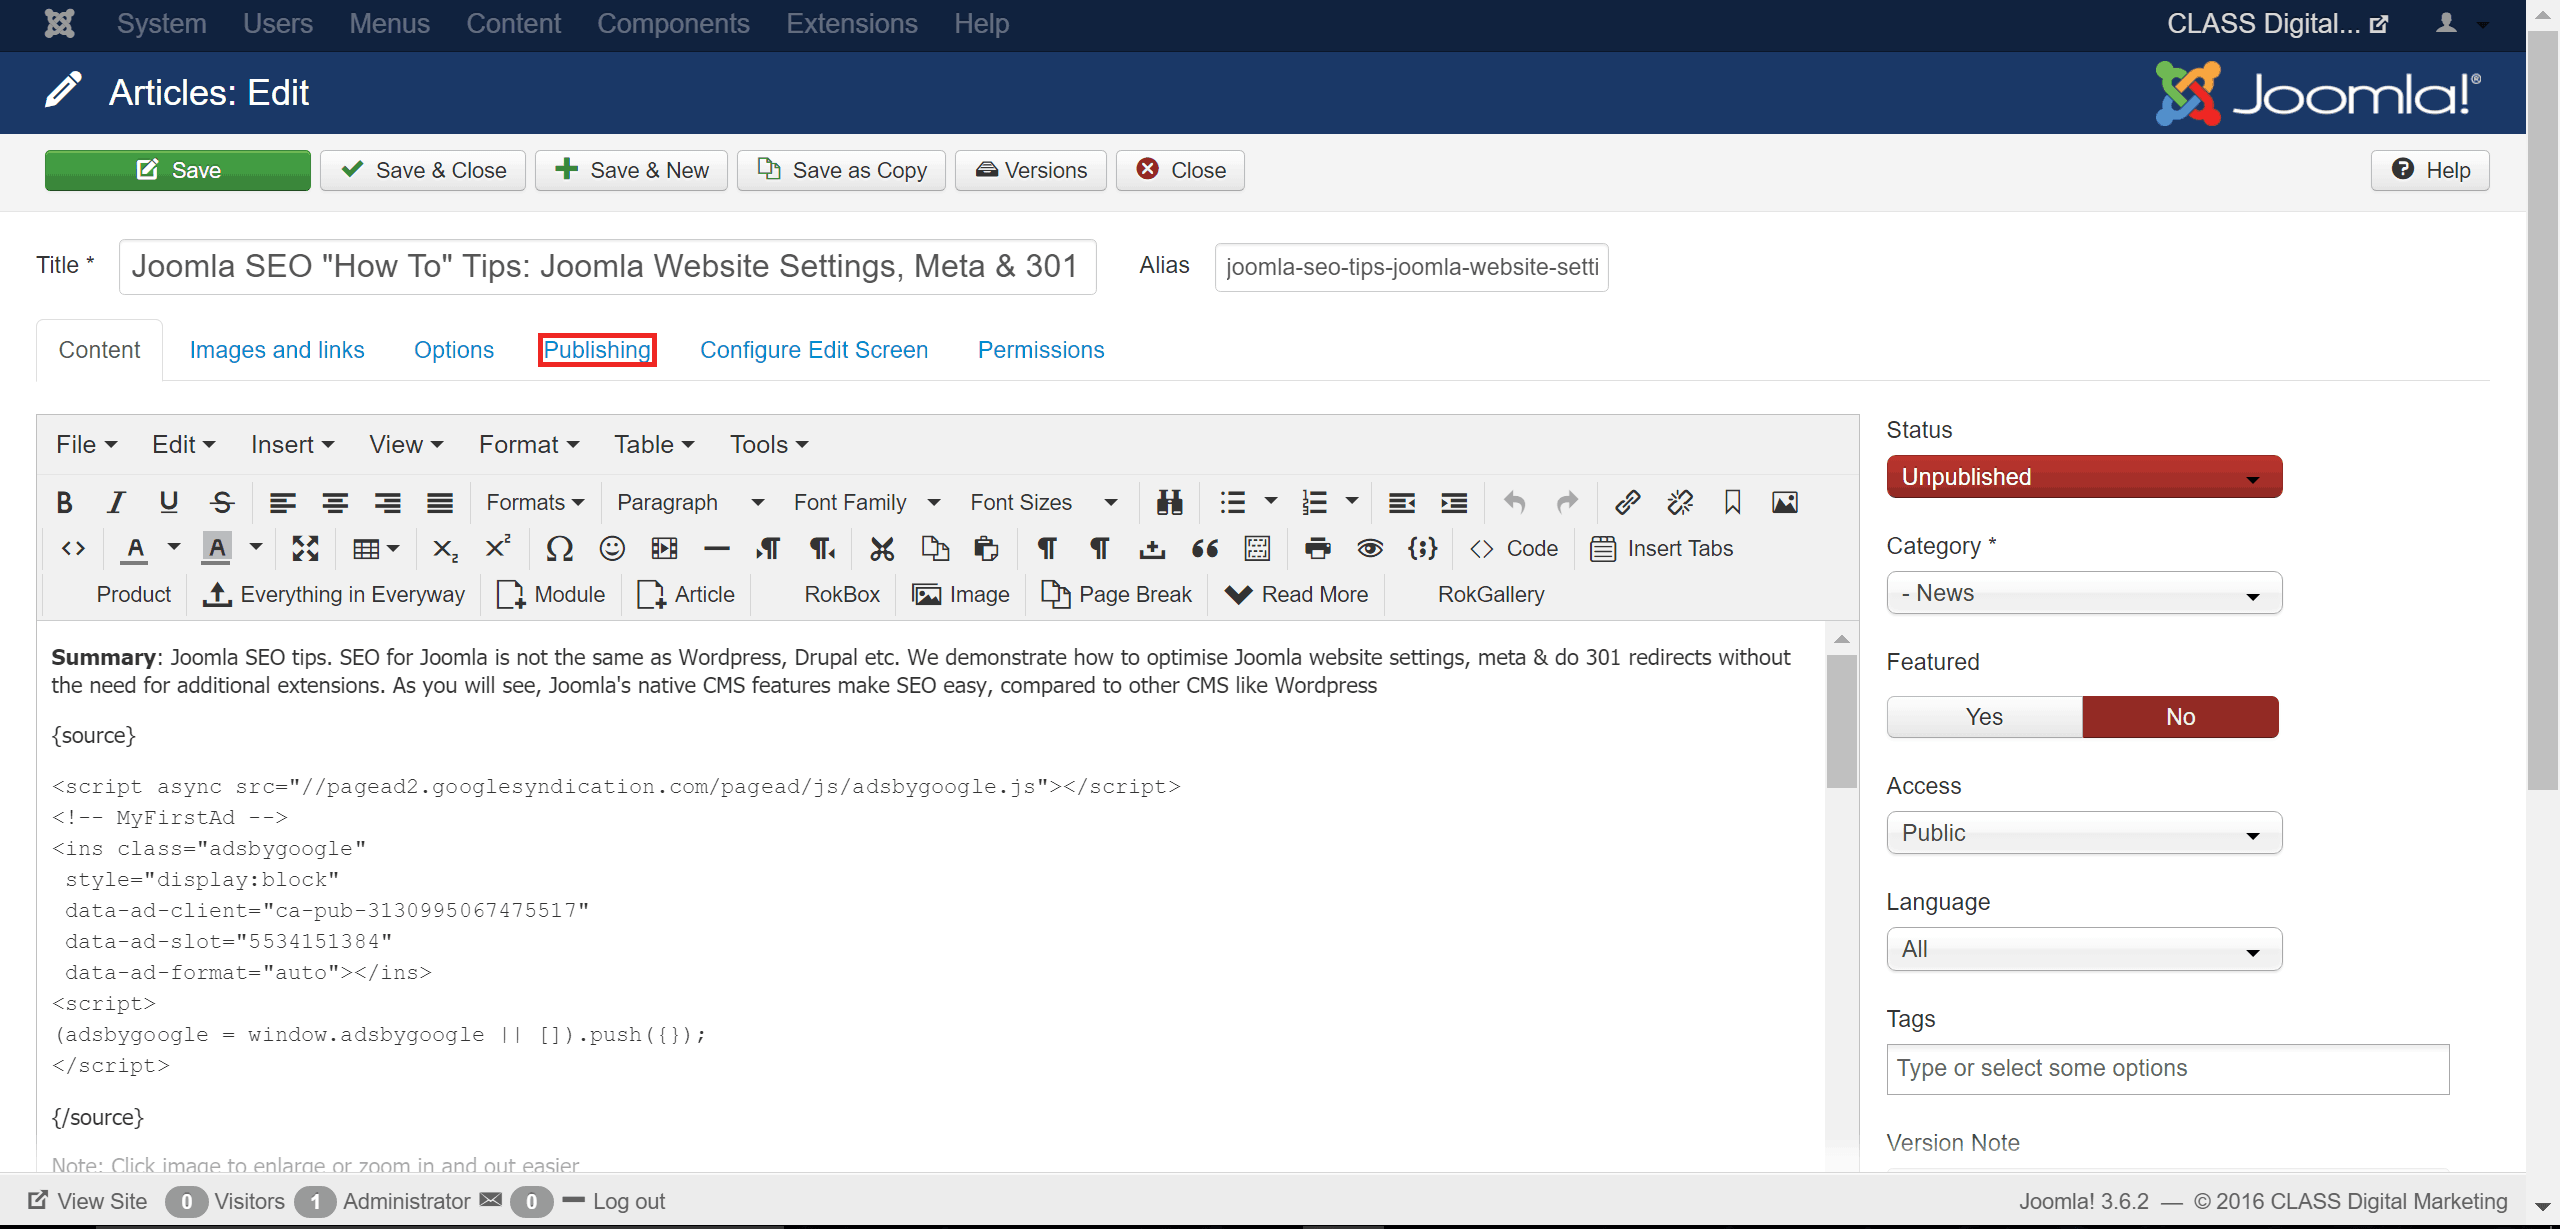 Joomla Website Editor